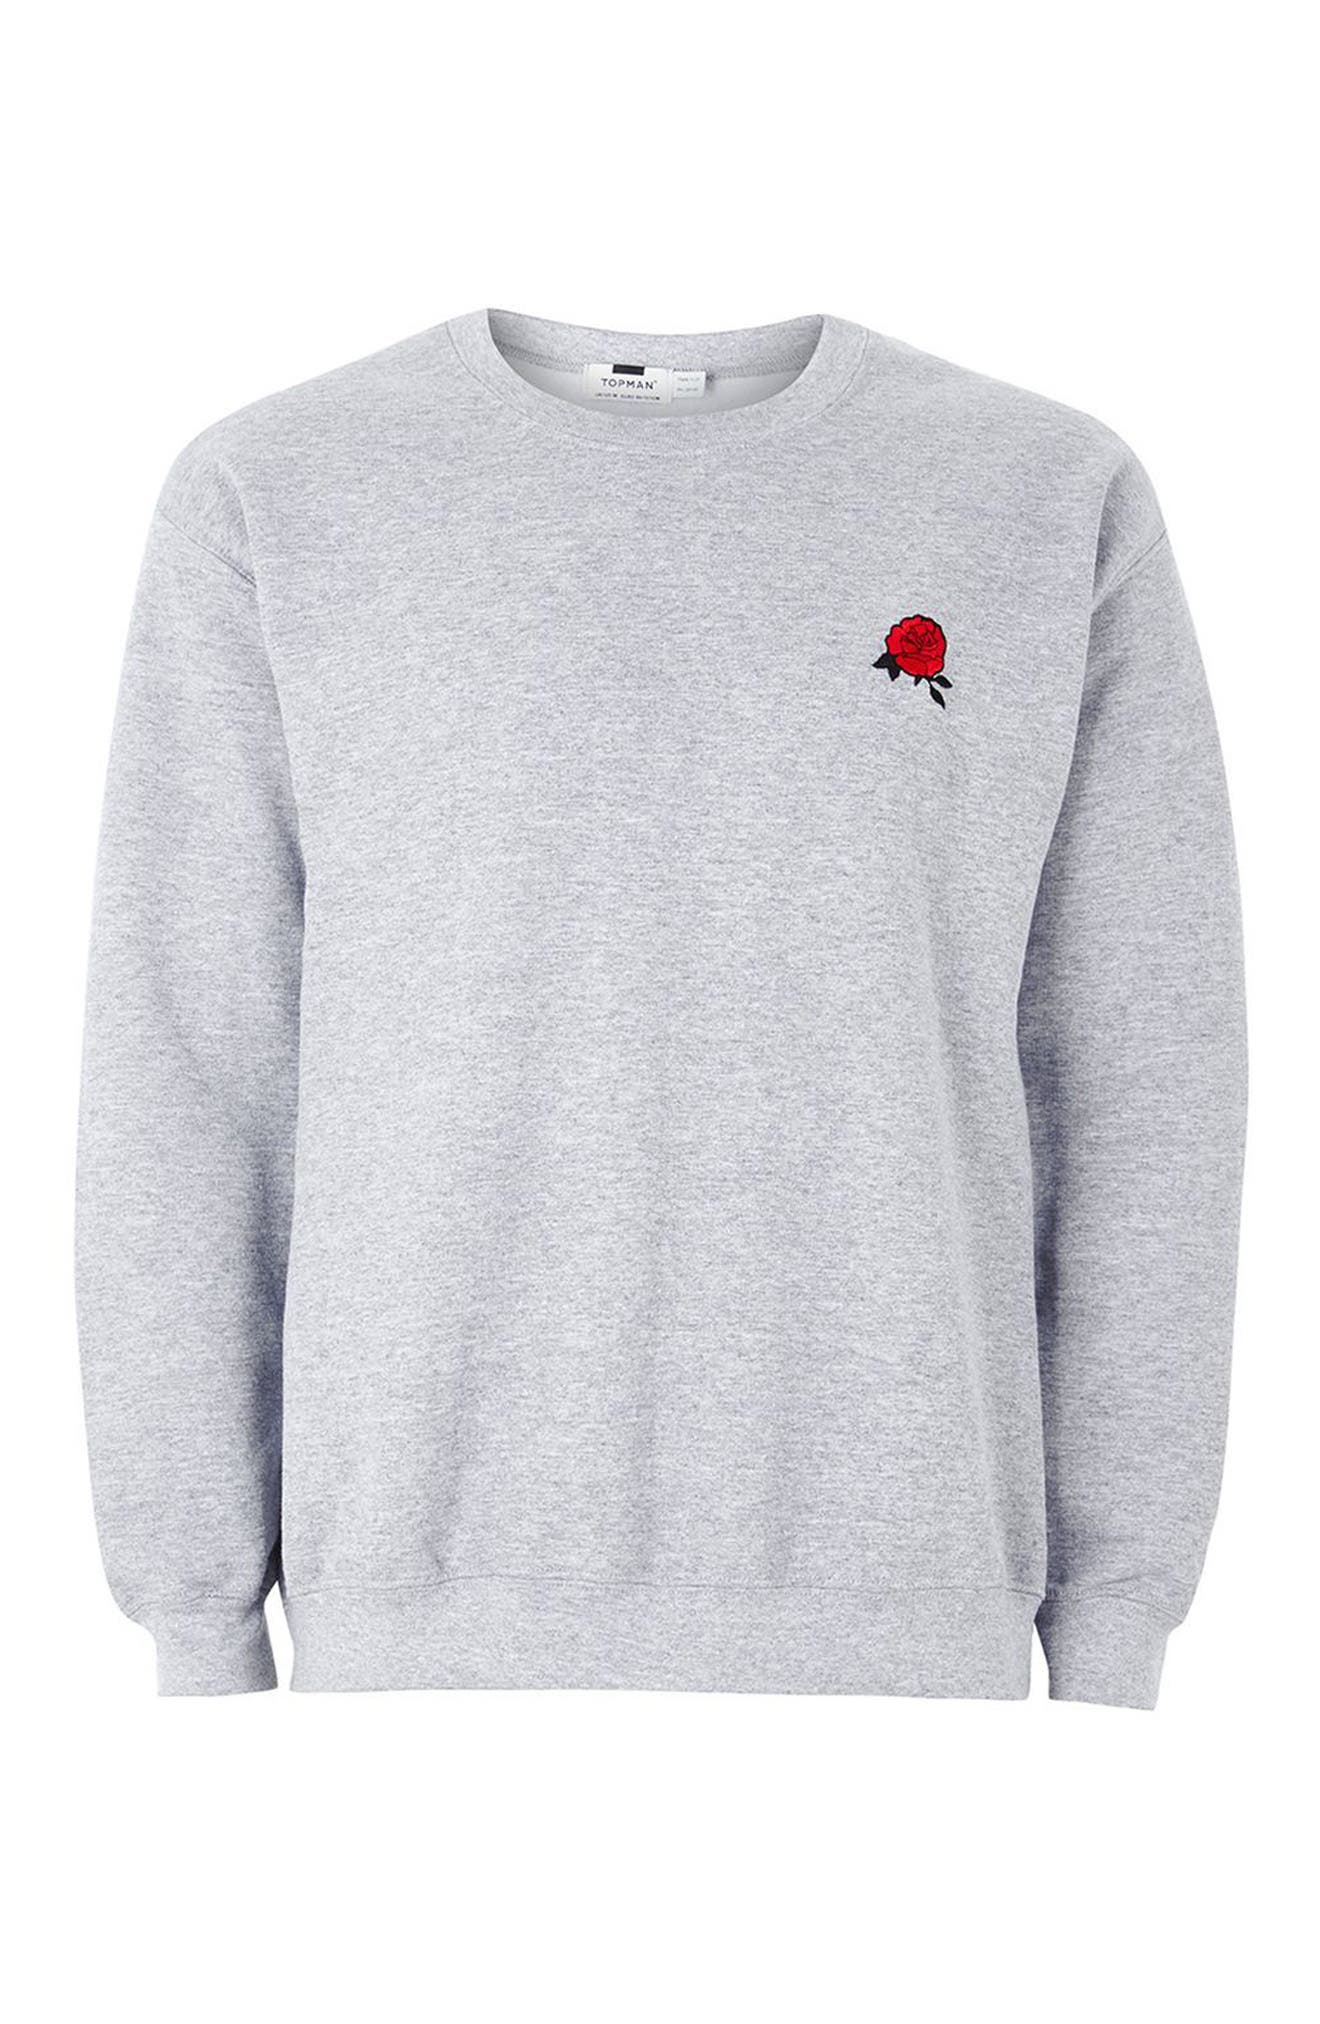 Rose Embroidered Sweatshirt,                             Alternate thumbnail 4, color,                             050